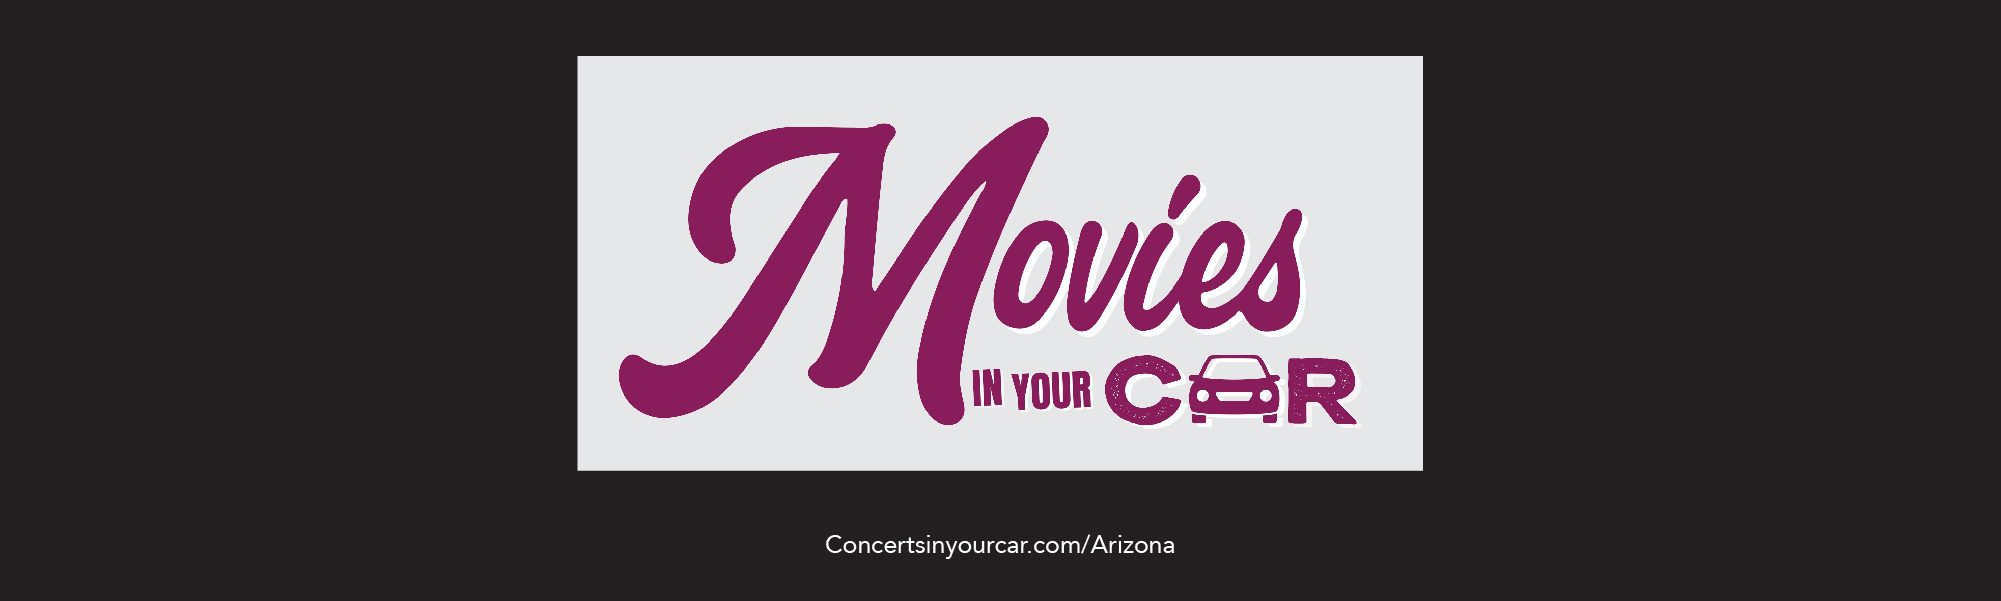 Movies In your Car Landing Page Banner-02